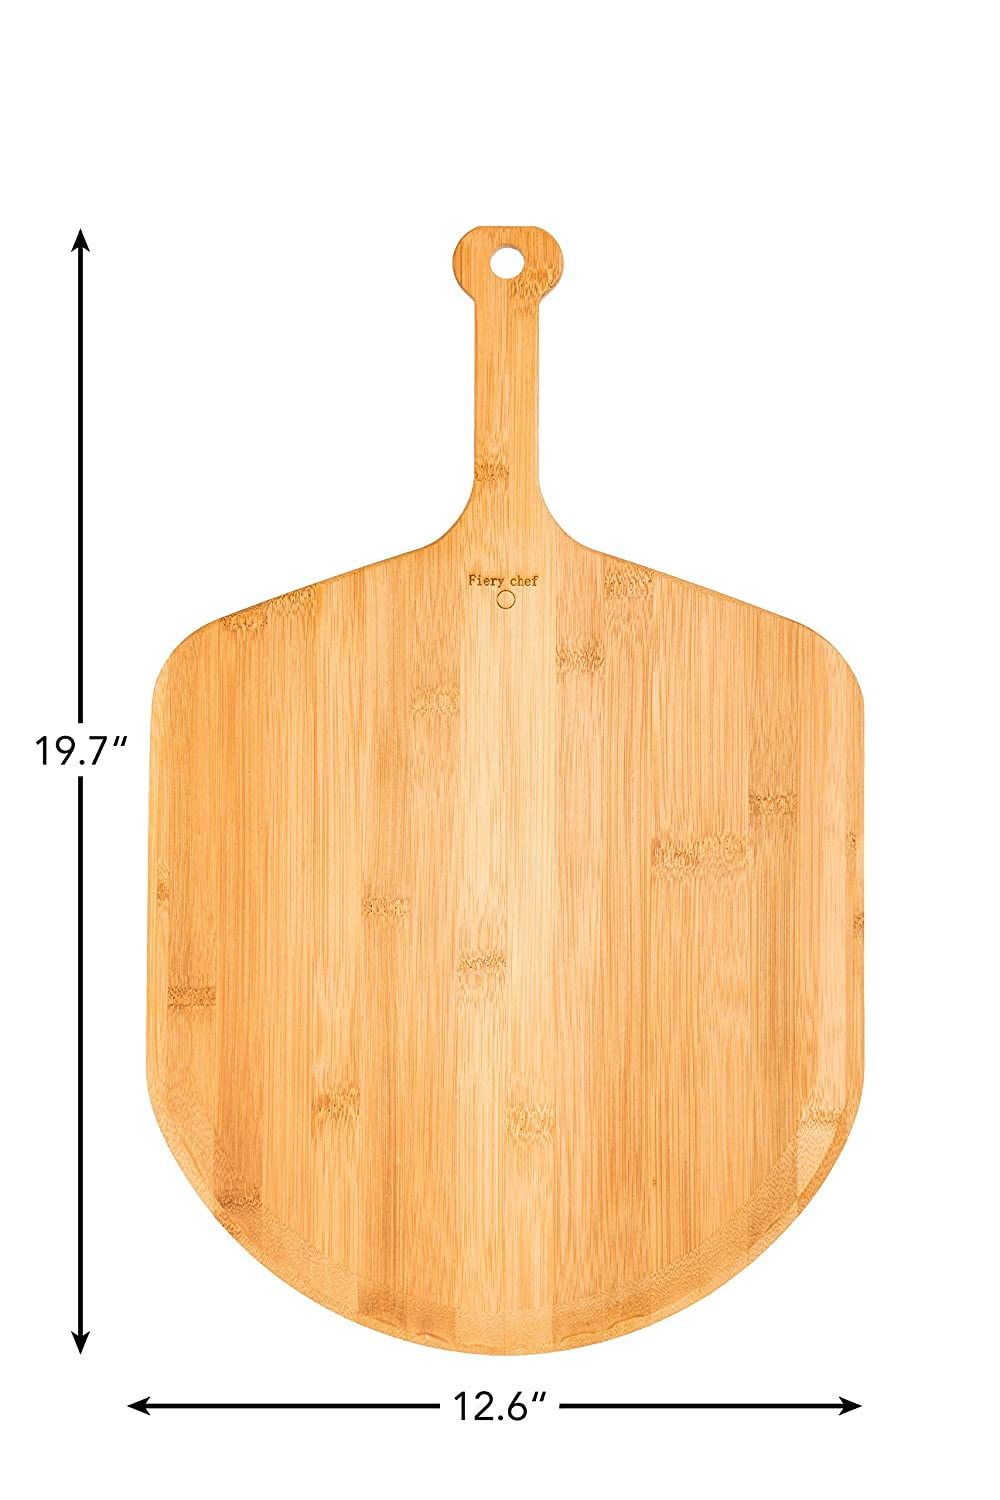 Fiery Chef Eco-friendly Multi-purpose Premium Natural Bamboo Pizza Peel - Paddle for Homemade Pizza and Bread Baking 12.6 x 13.8 inch Blade, 19.7 inch overall